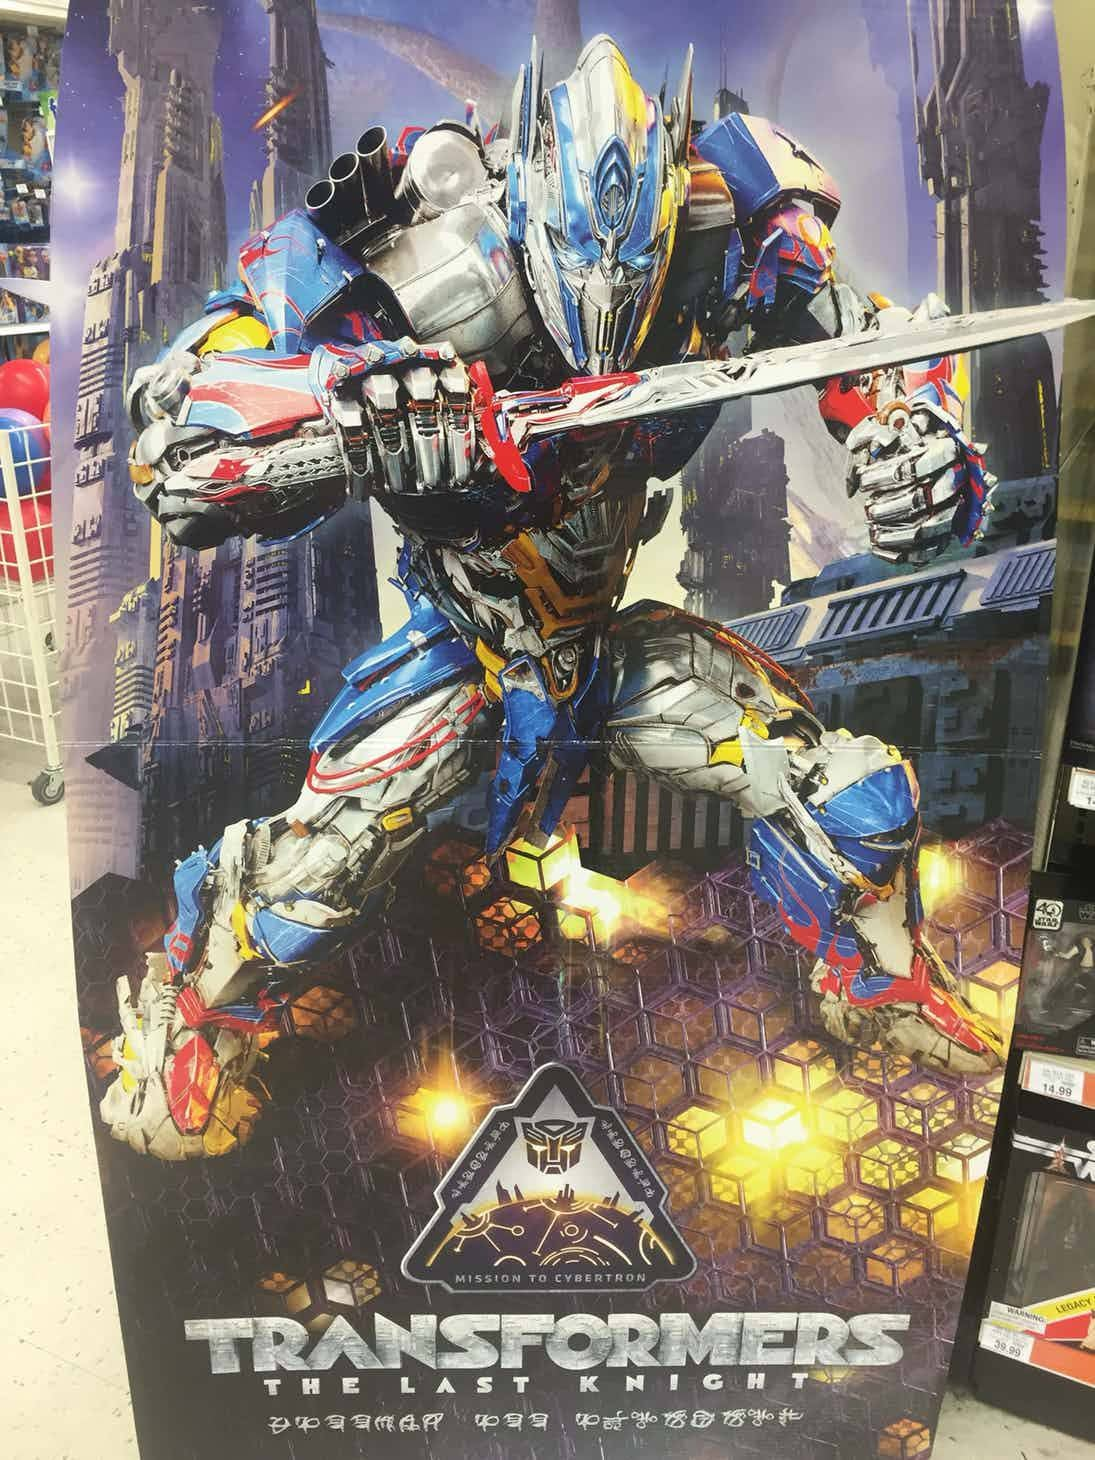 Grimlock Fall Of Cybertron Wallpaper Transformers 5 Does Optimus Prime Merge With Bumblebee S